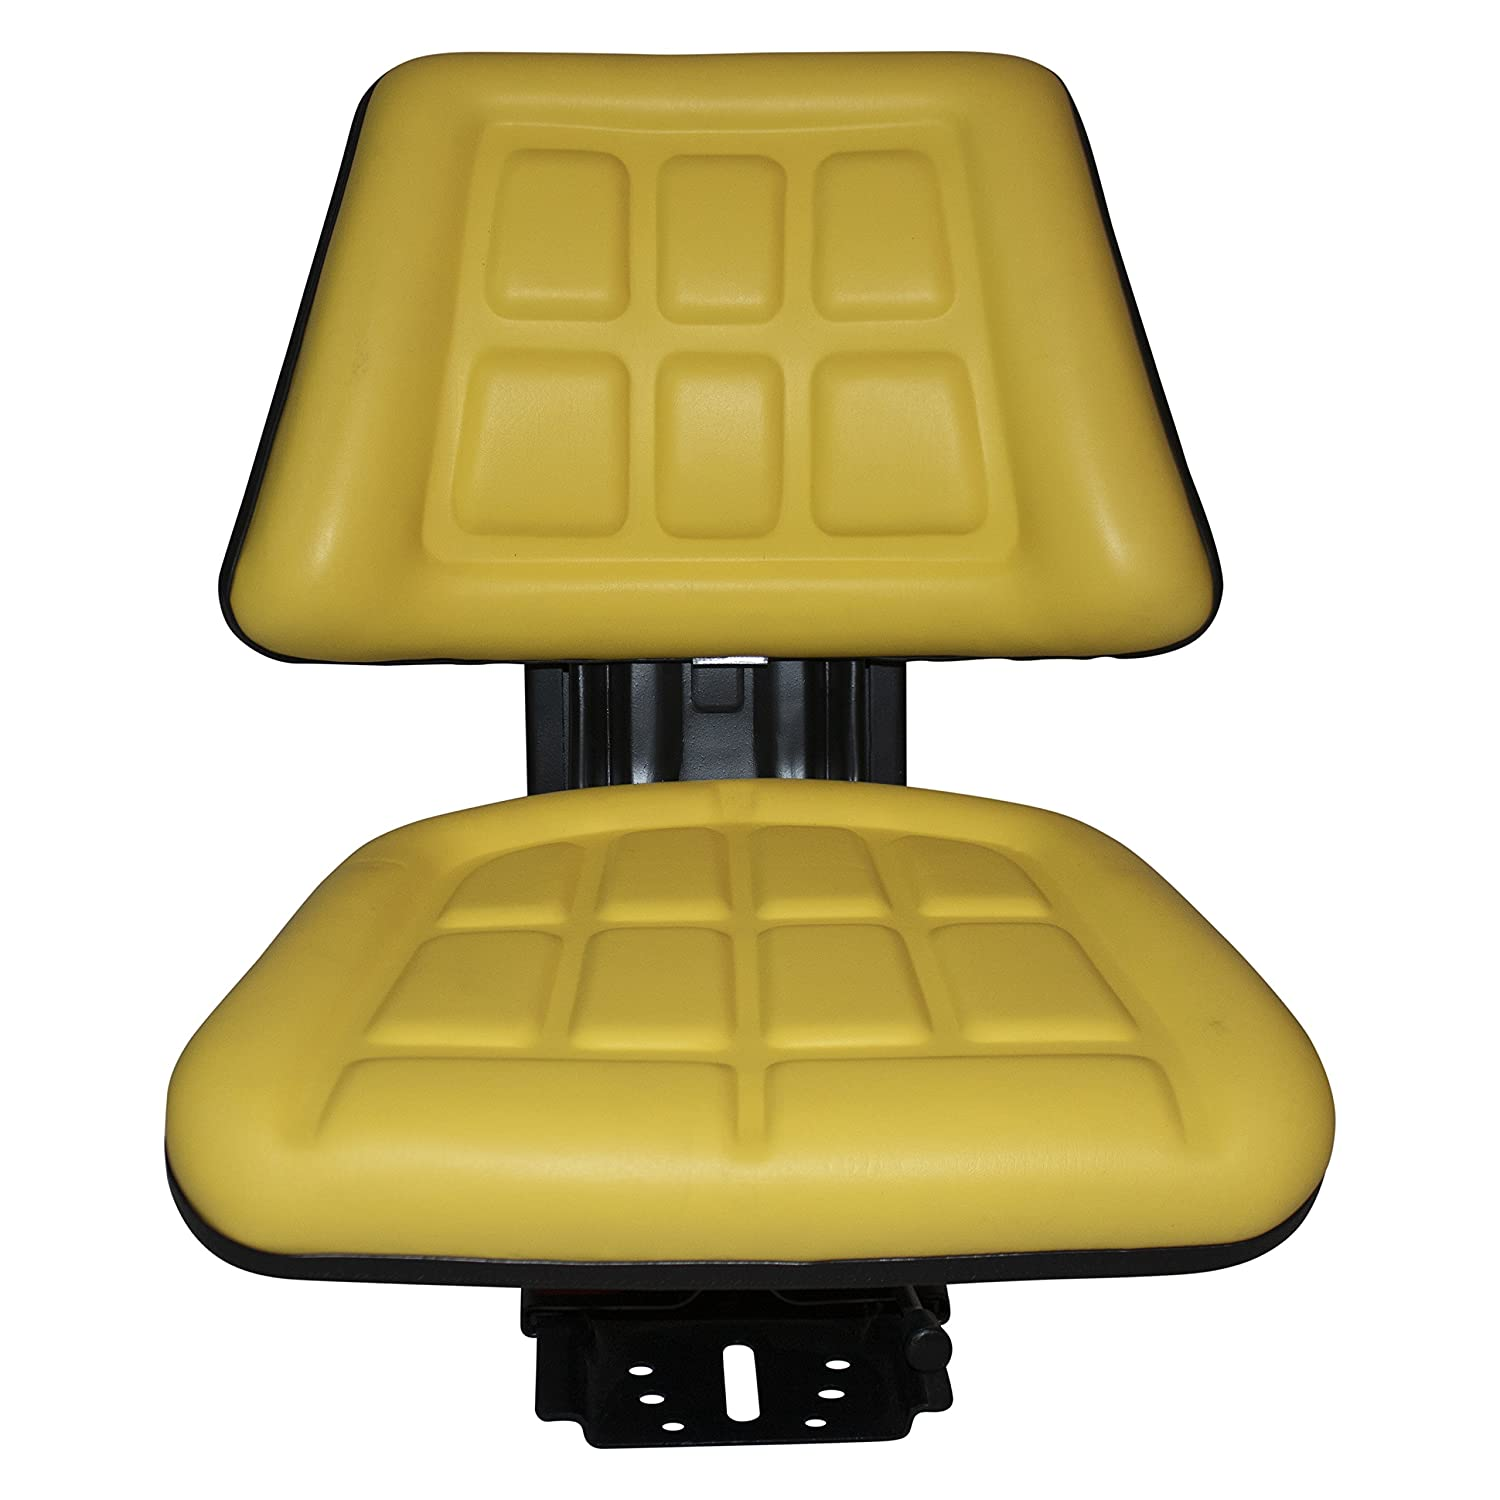 Yellow John Deere 5200 5210 5300 5310 TRAC SEATS Brand TRIBACK Style Universal Tractor Suspension SEAT with TILT (Fast Shipping - 1-4 Business Days DELIVERY - Same OR Next Day Shipping - View MAP) Stateline Distribution Inc. JDY6110WAF